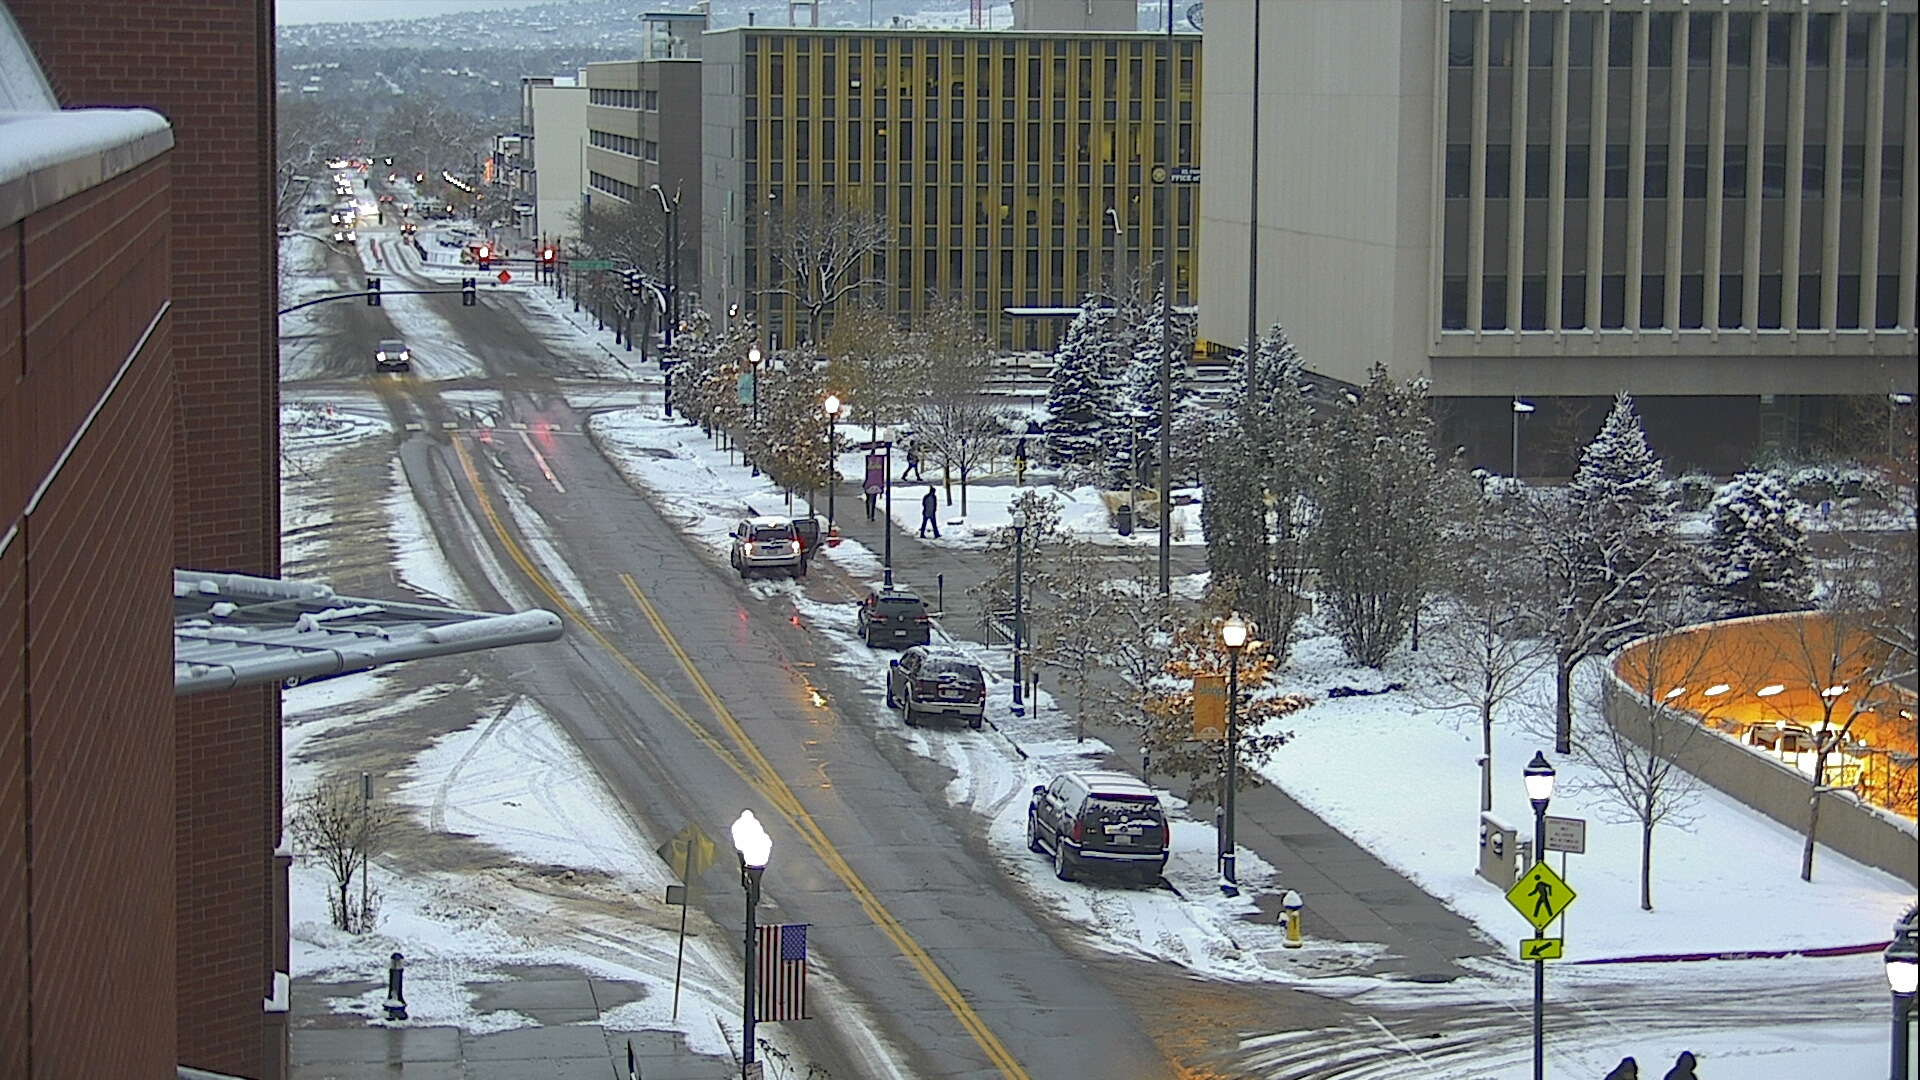 Tejon Street outside the El Paso County Courthouse in downtown Colorado Springs around 7:45 a.m. Tuesday.